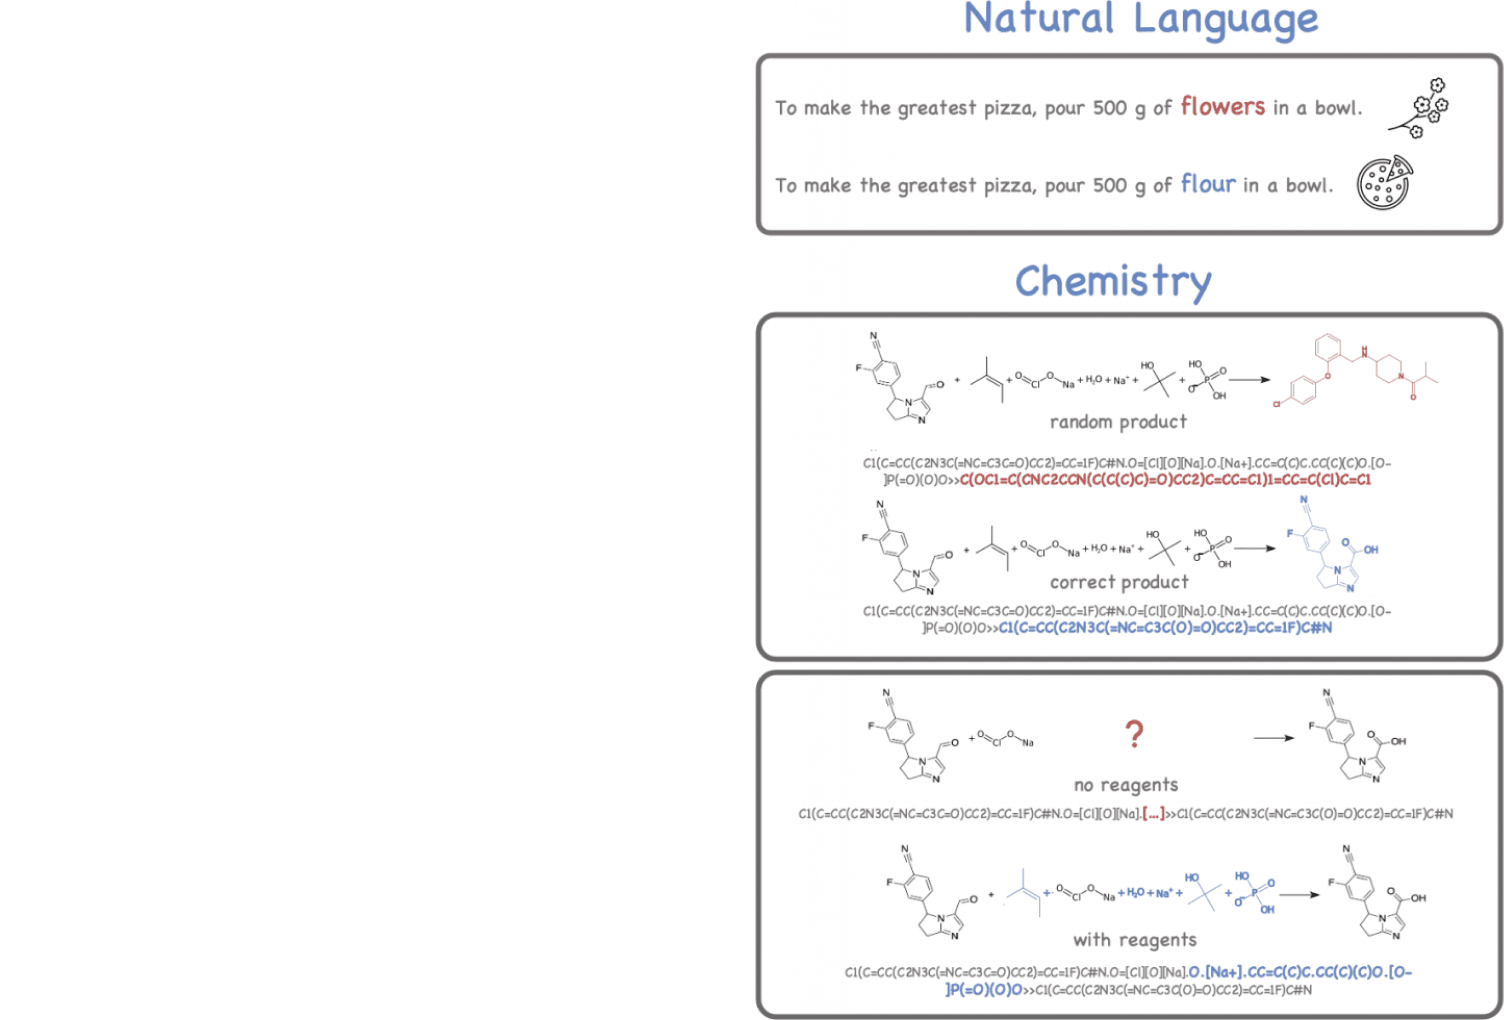 A decorative chart presenting translation errors in natural language and in chemical reactions